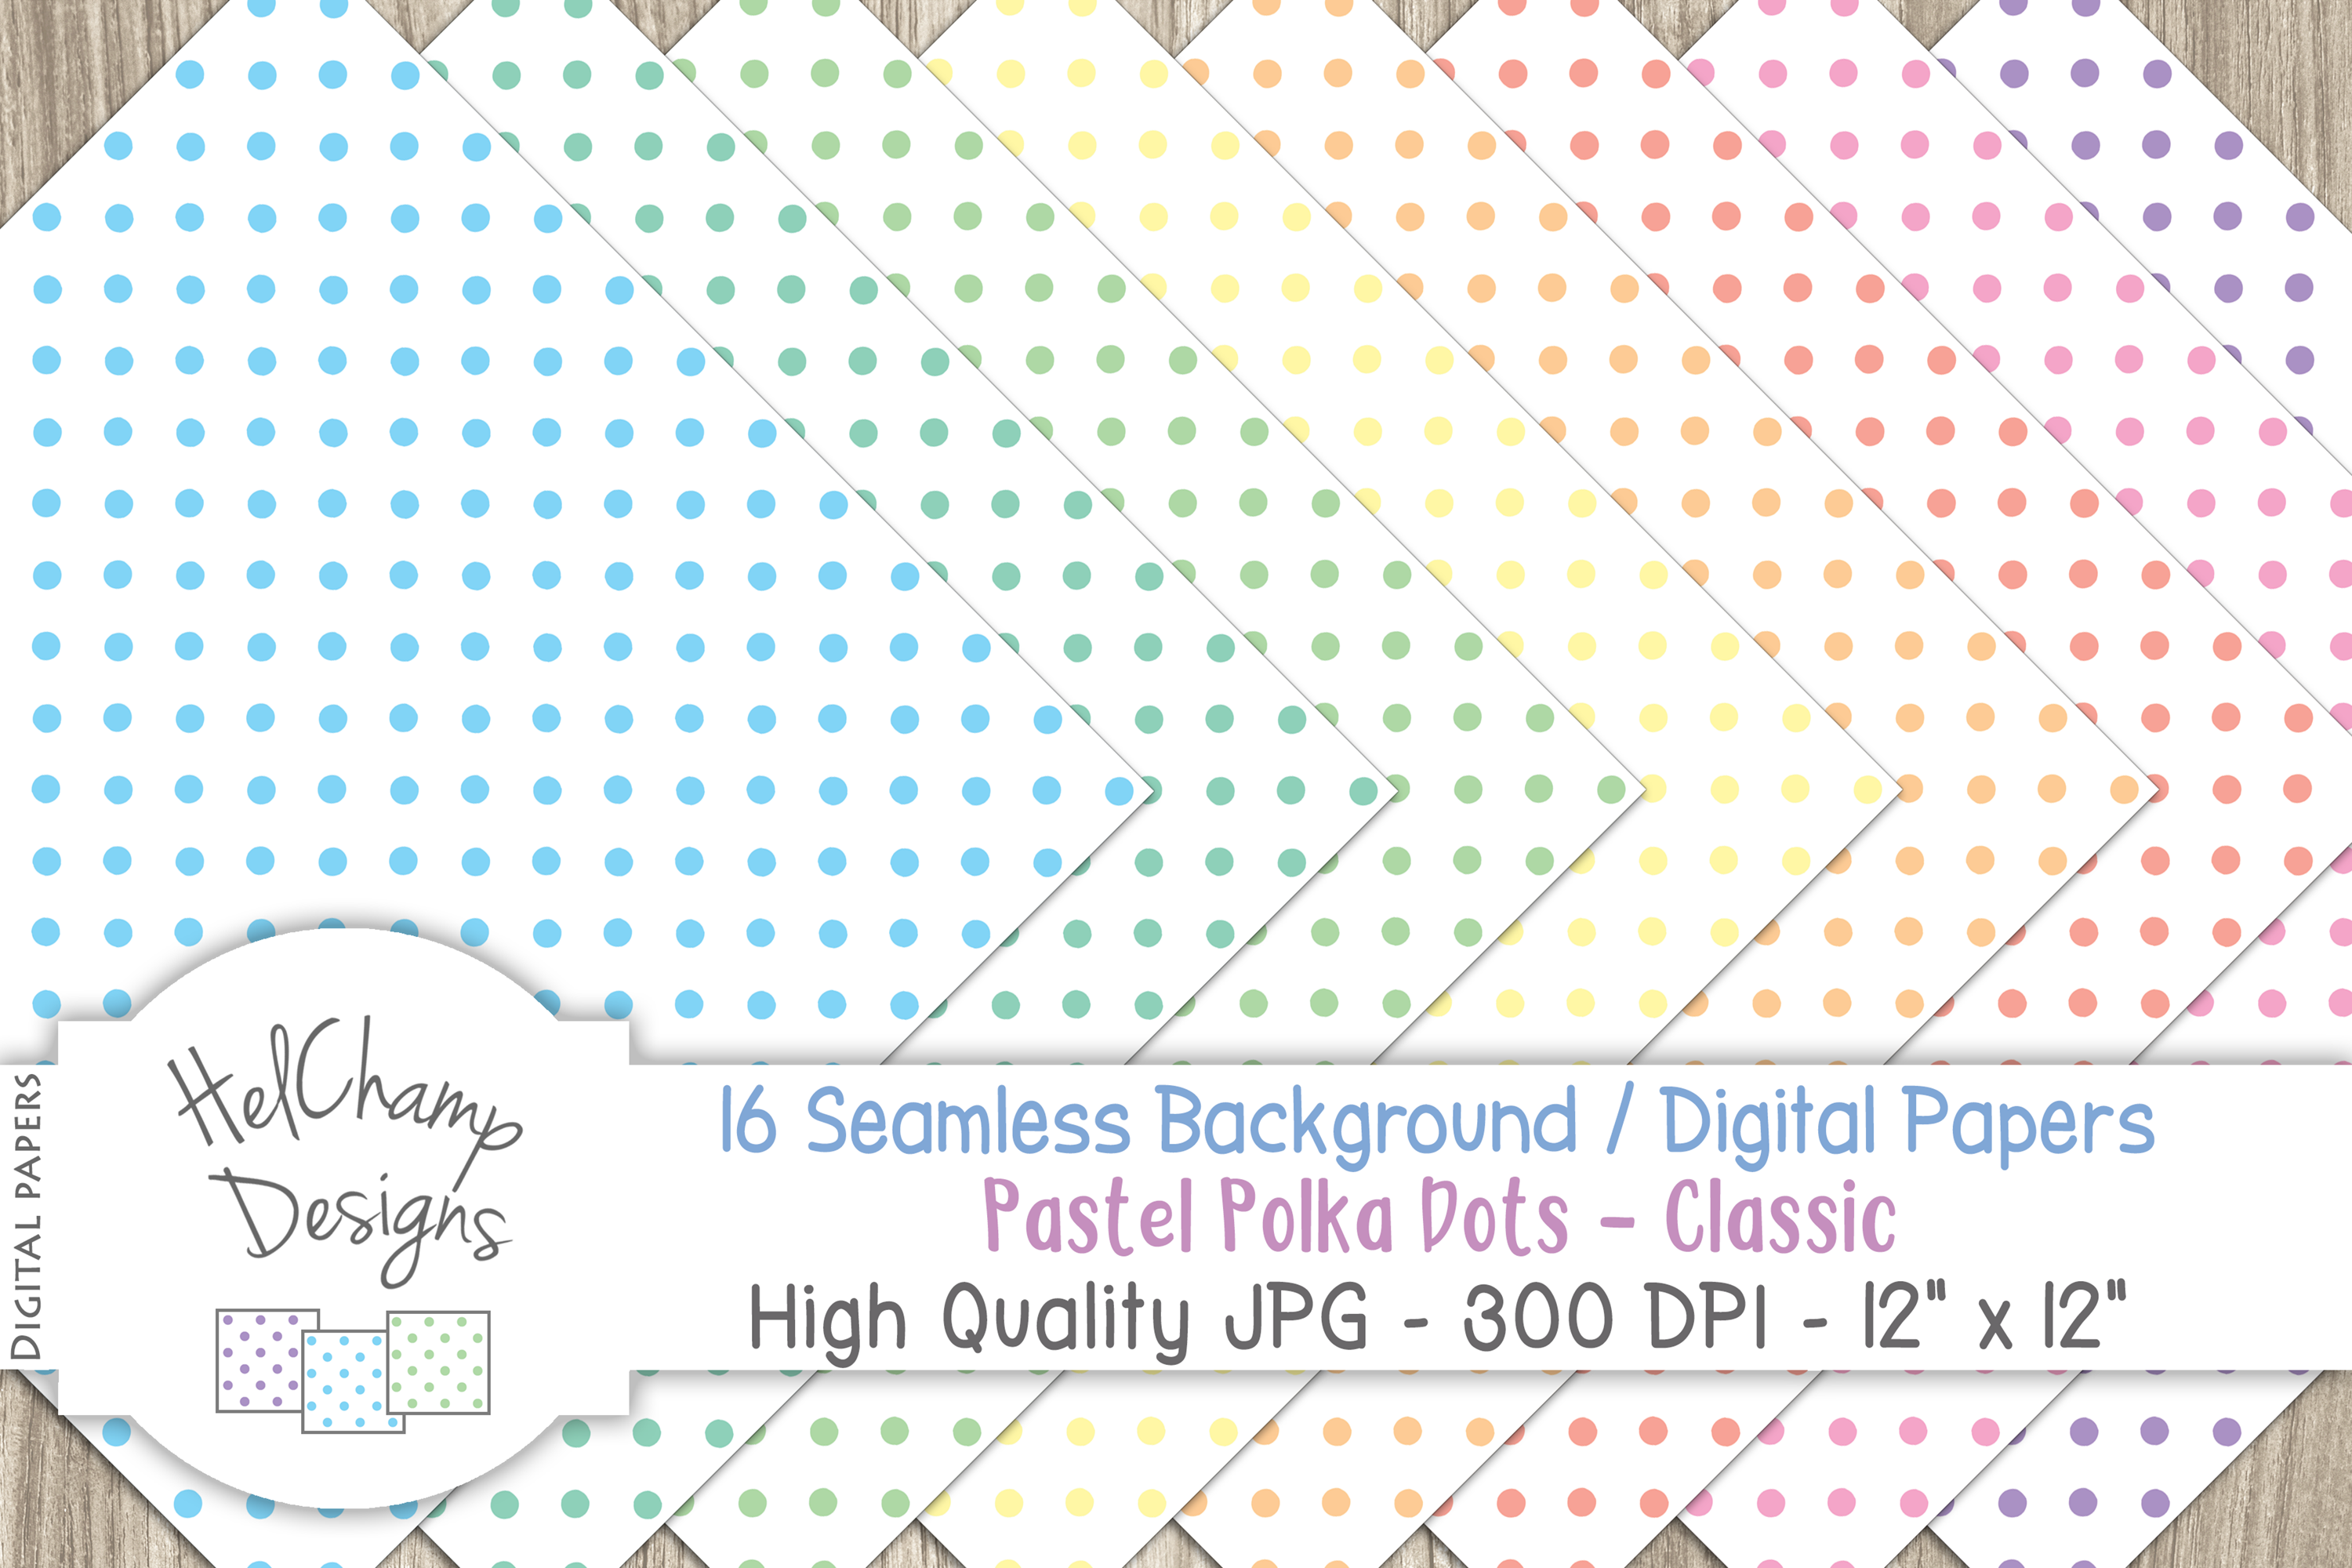 16 seamless Digital Papers Pastel Polka Dots Classic - HC010 example image 5